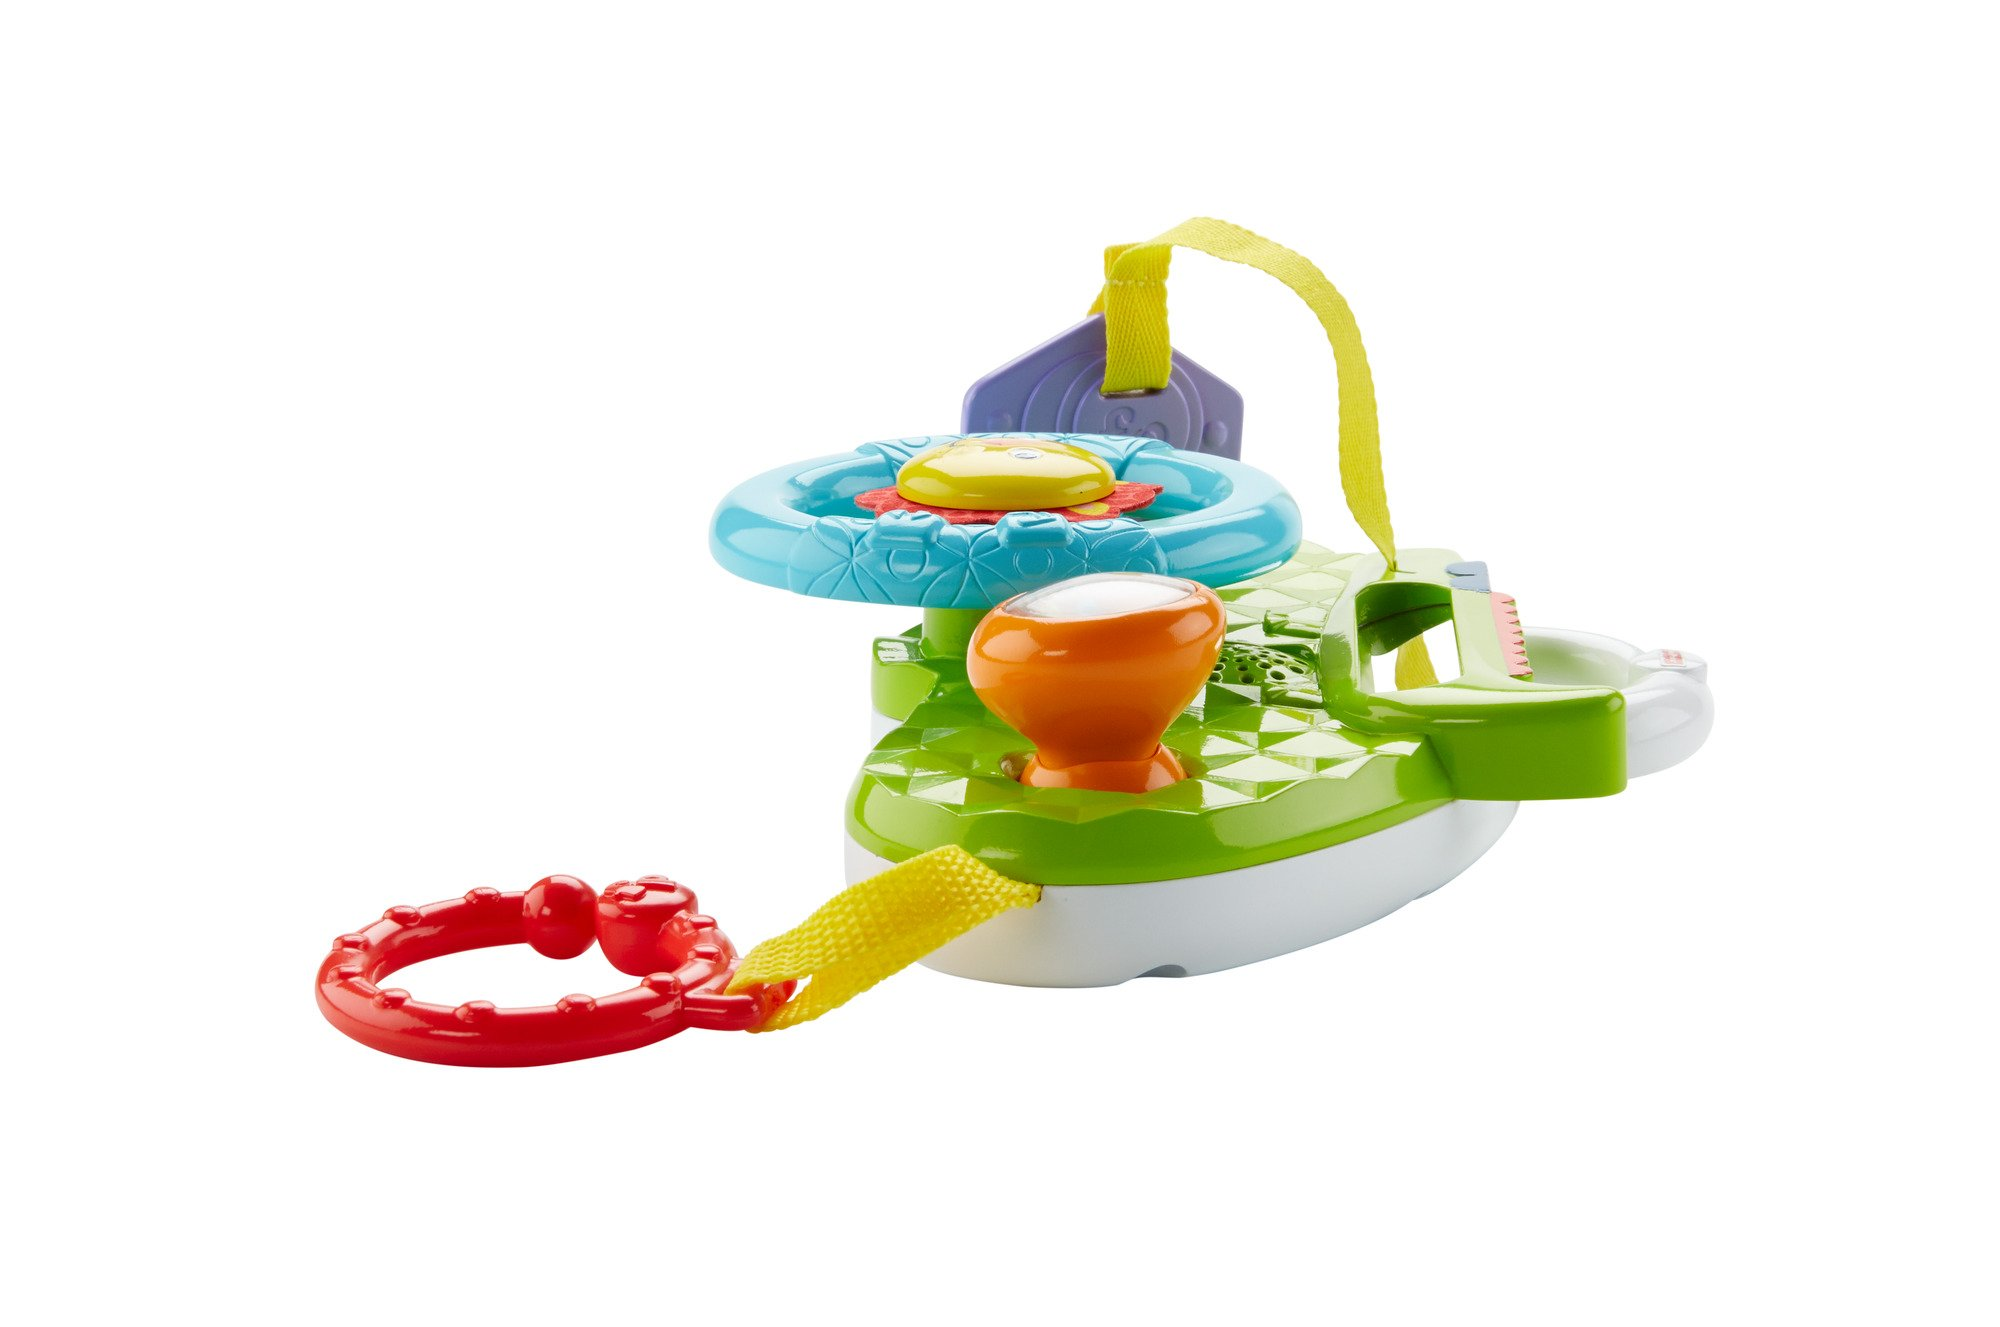 Fisher-Price Rolling and Strolling Dashboard, New-born Activity Toy with Music Sounds Fisher-Price  Attaches to stroller for playtime on the go  Turn the lion steering wheel to hear short songs  Push the lion's face for silly sound effects (Beep beep!) 3